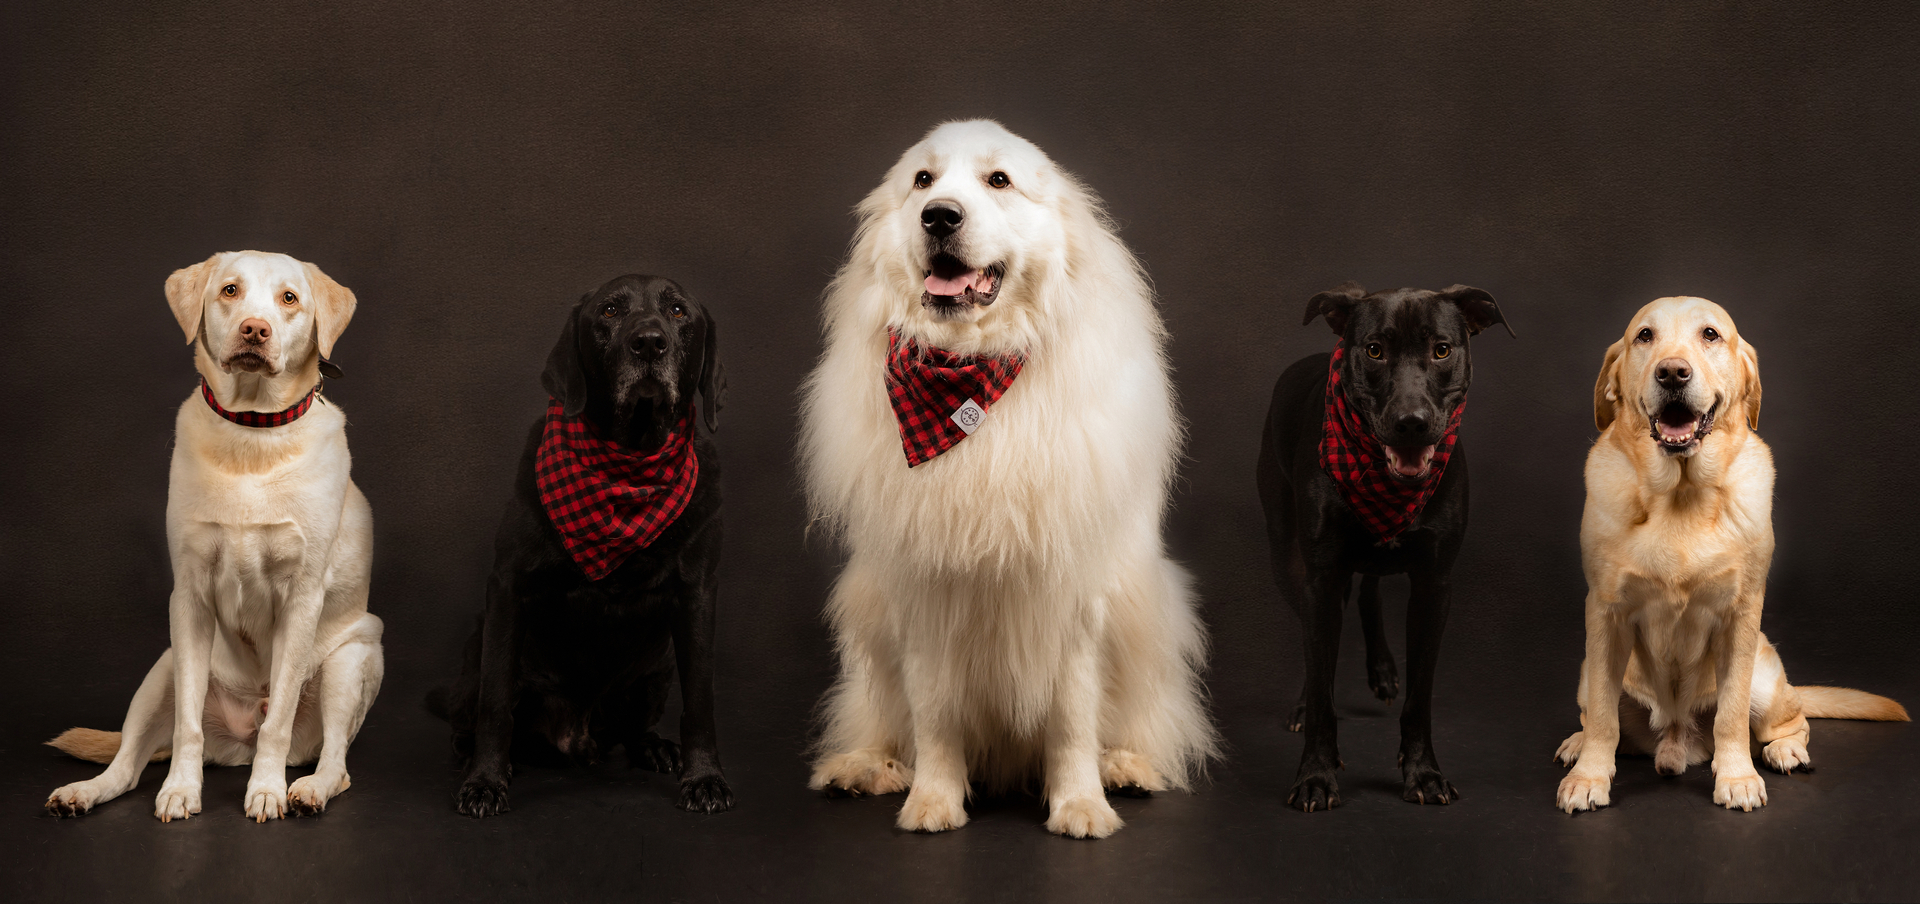 PETS & FURKIDS - Celebrate the life you share with your adorable furkids